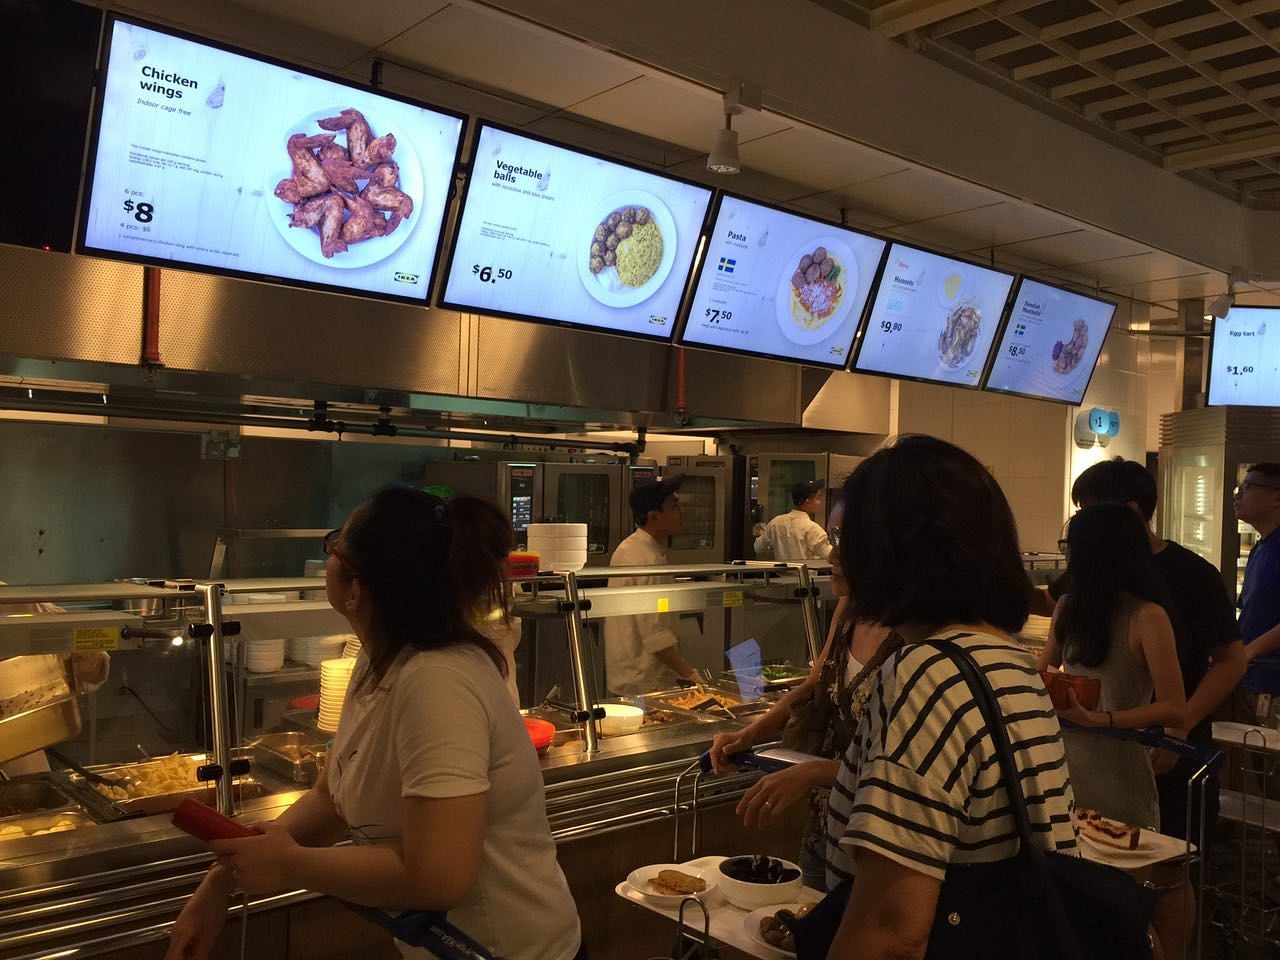 Ikea Singapore To Temporarily Stop Selling Chicken Wings After